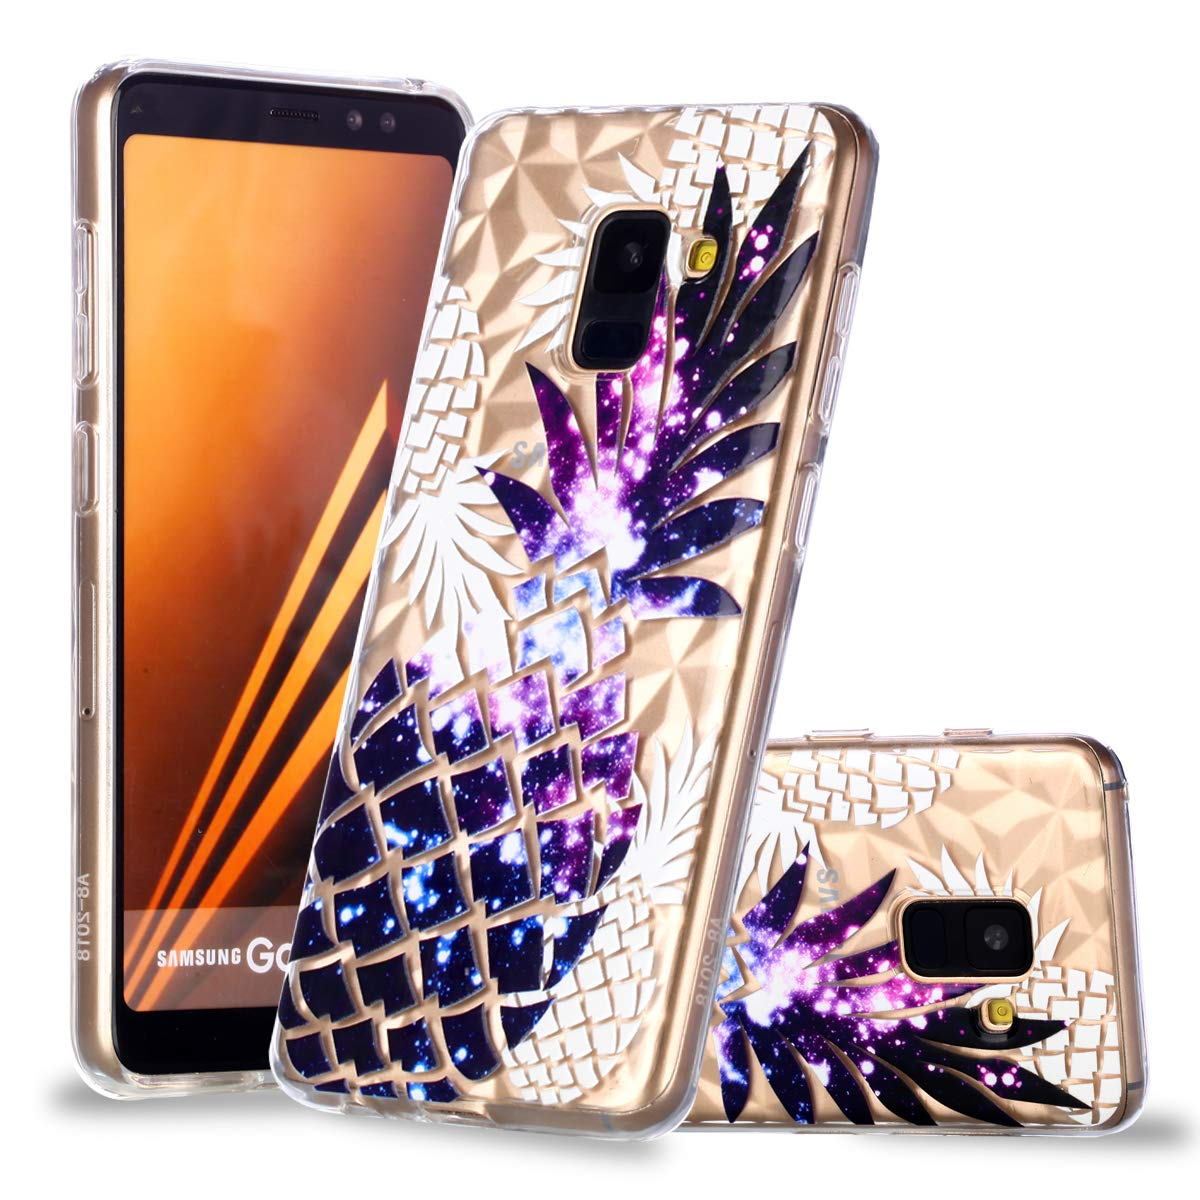 Ultra Slim Soft Clear Case for Samsung Galaxy A8 2018, Gostyle Samsung Galaxy A8 2018 Case Embossed Blue Lotus Flower Geometric Pattern, Flexible TPU Silicone Protective Back Cover